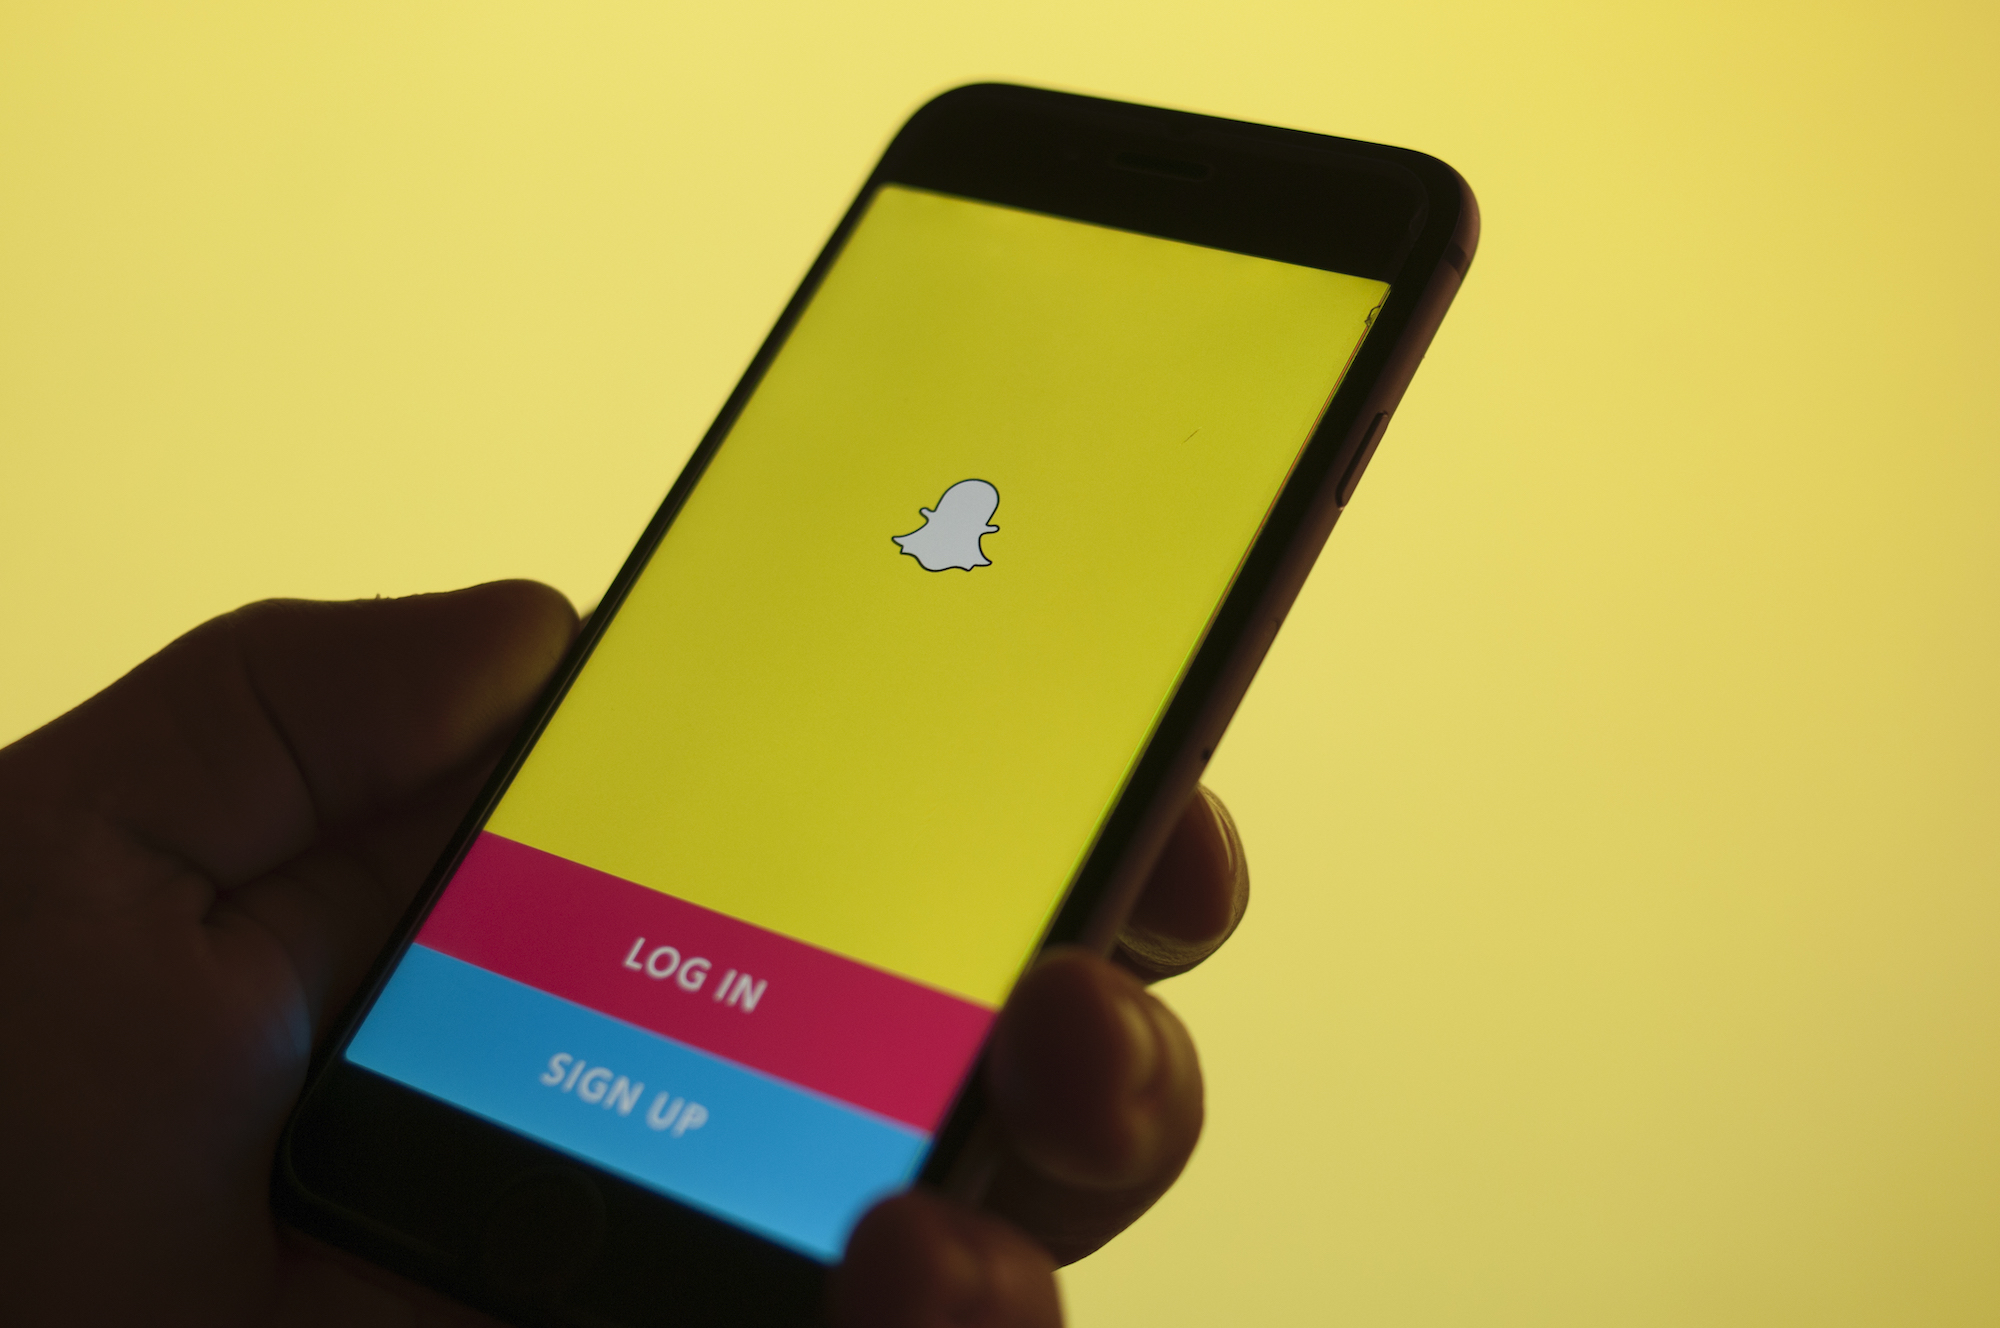 The Snapchat image messaging and multidmedia application is seen on an iPhone in this photo illustration on Dec. 5, 2017.